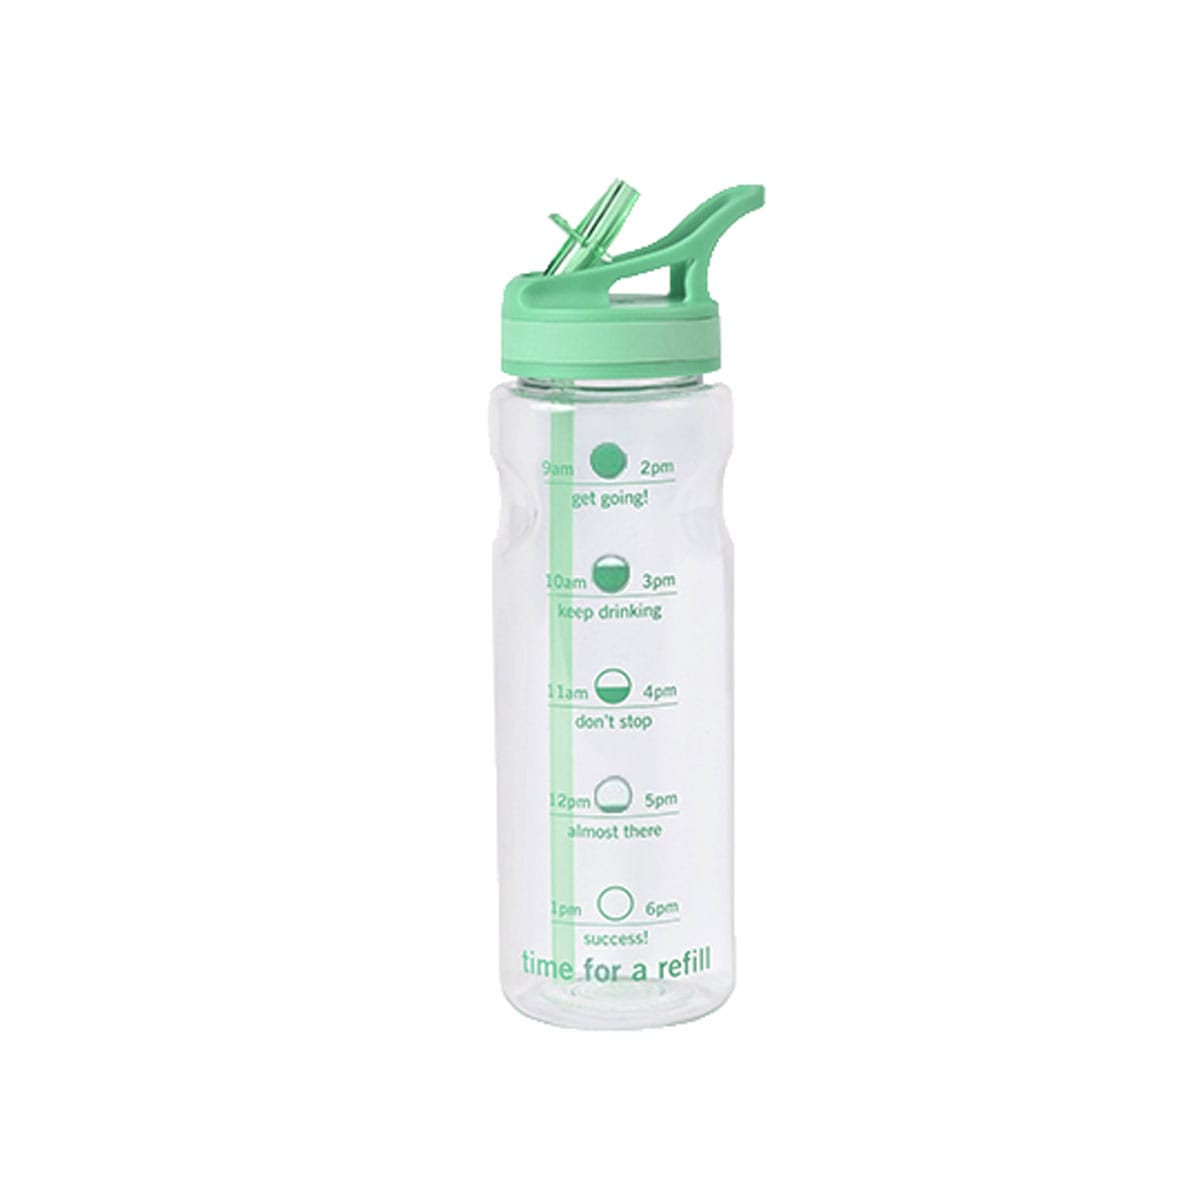 WW Water Tracking Bottle, keeps track of how much you've drunk, colour mint, helps stay hydrated